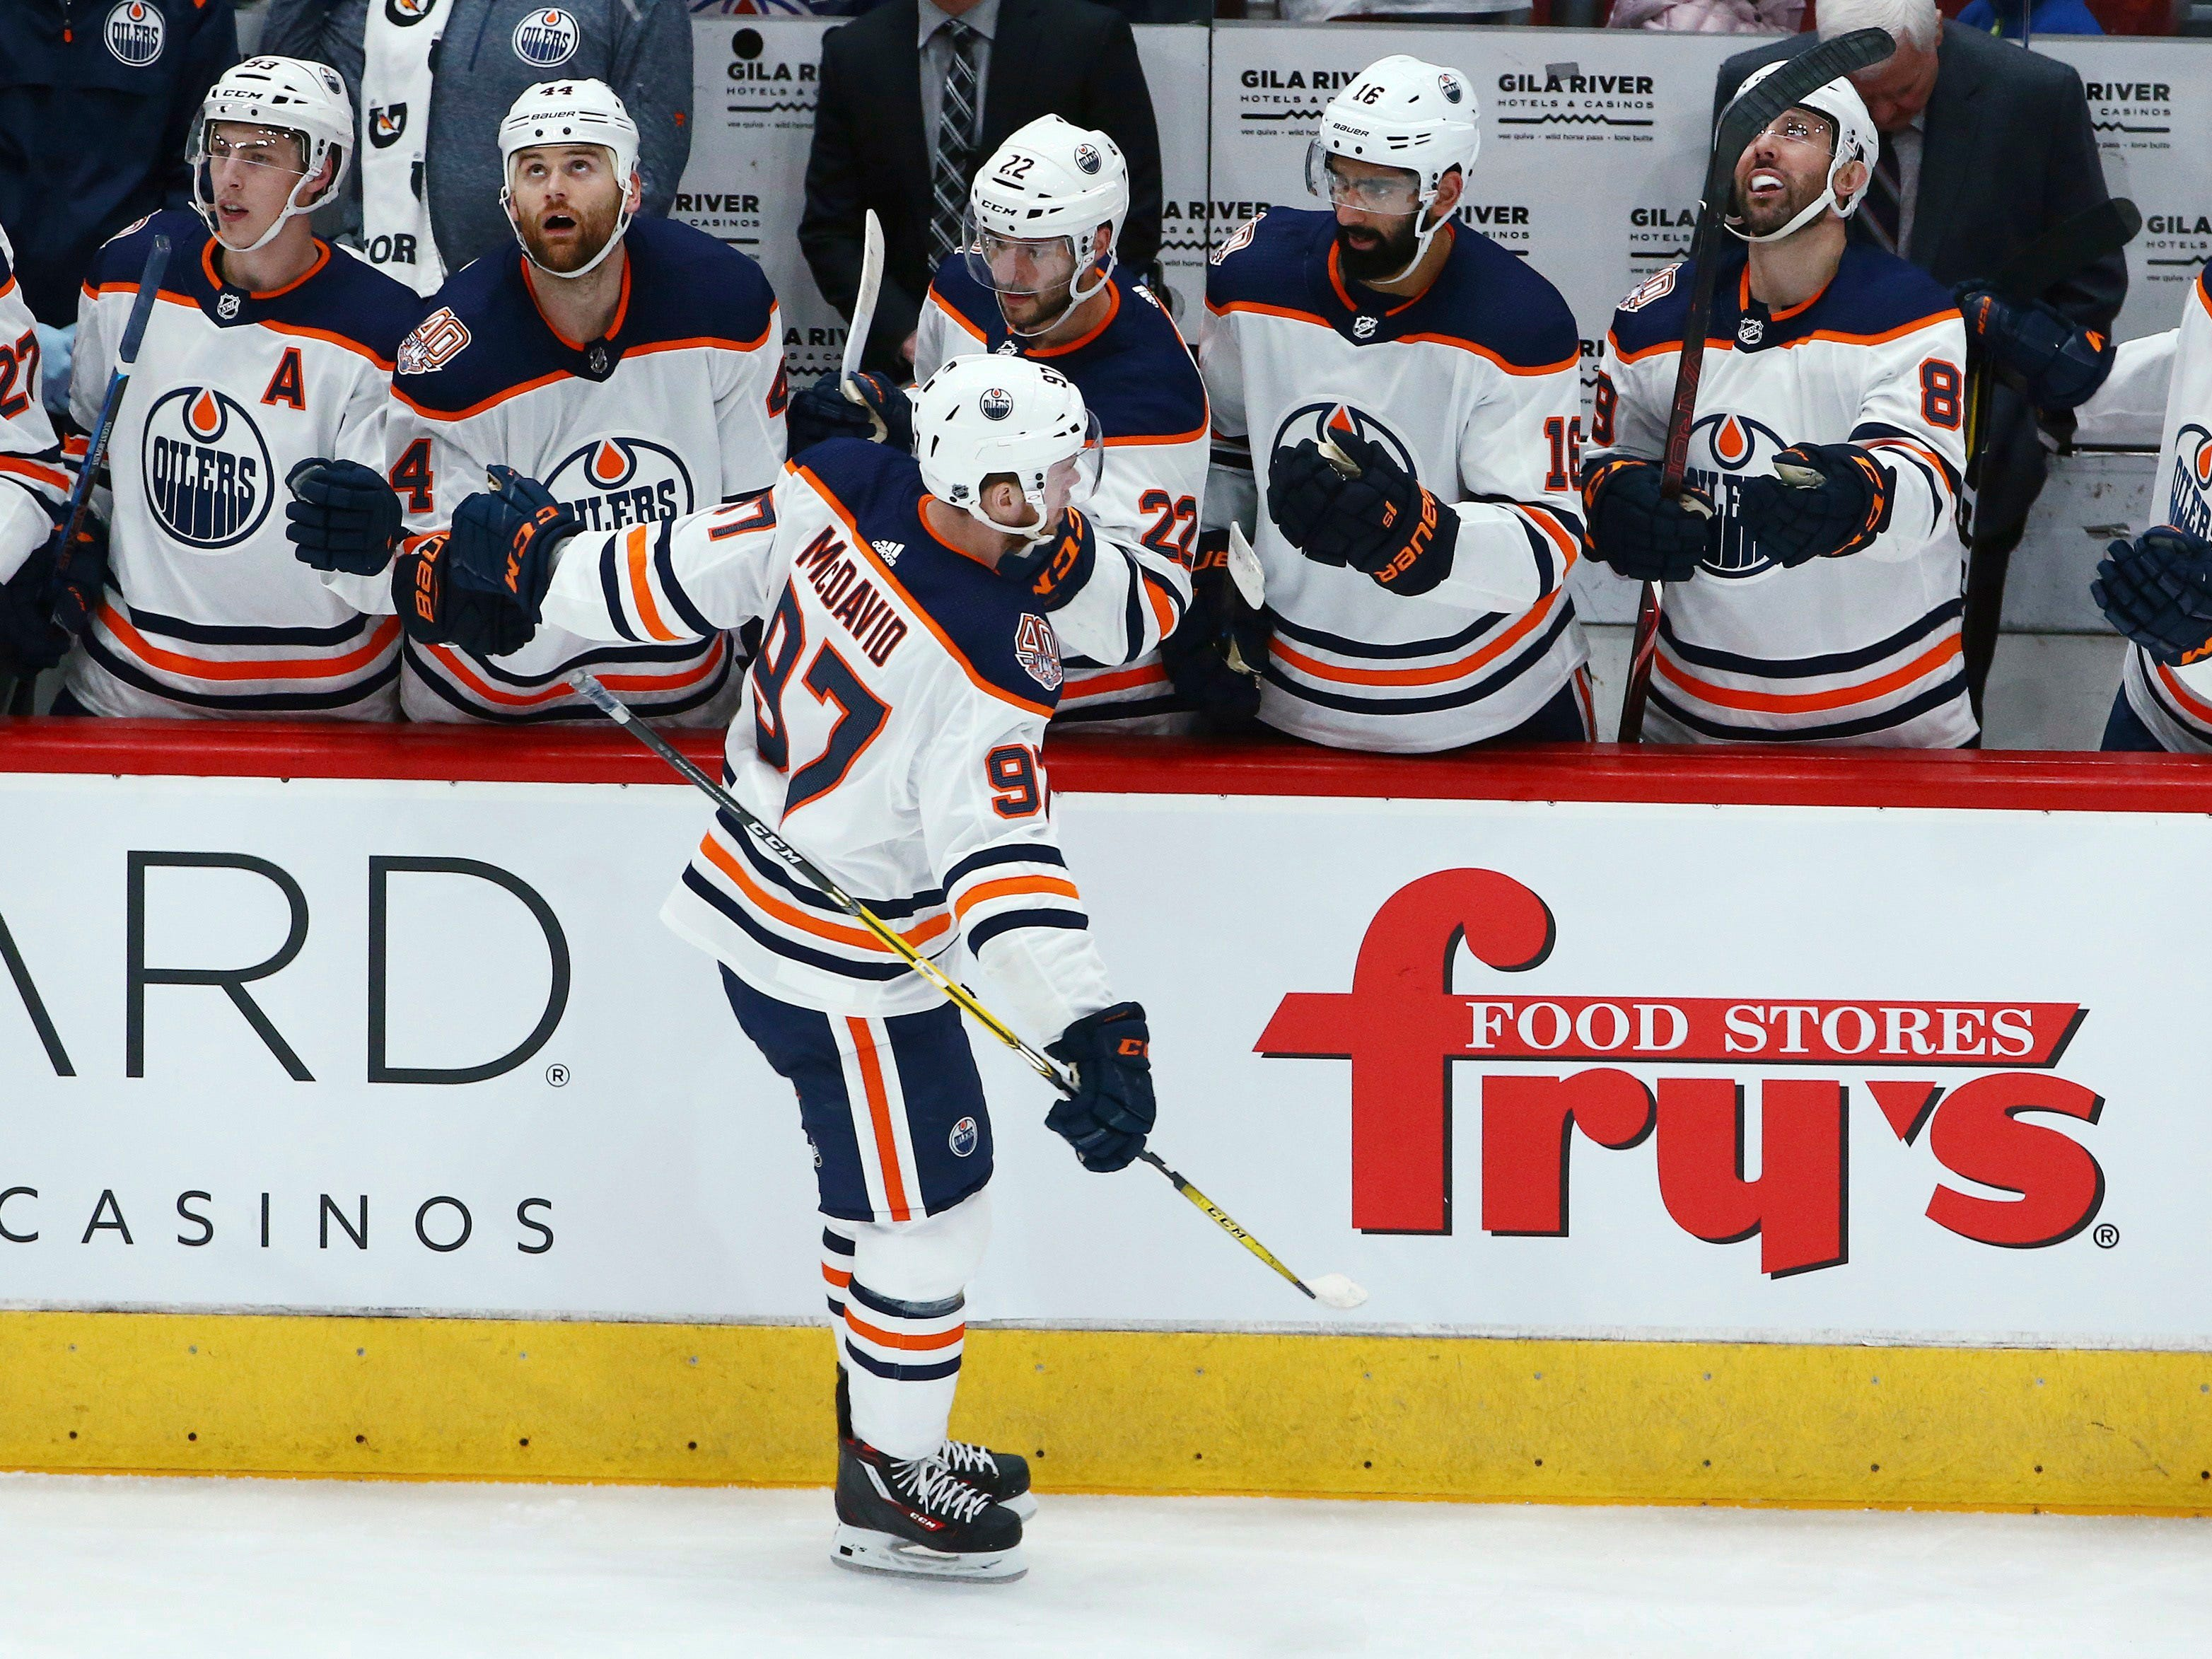 Edmonton Oilers center Connor McDavid (97) celebrates his goal against the Arizona Coyotes during the first period of an NHL hockey game Saturday, March 16, 2019, in Glendale, Ariz.